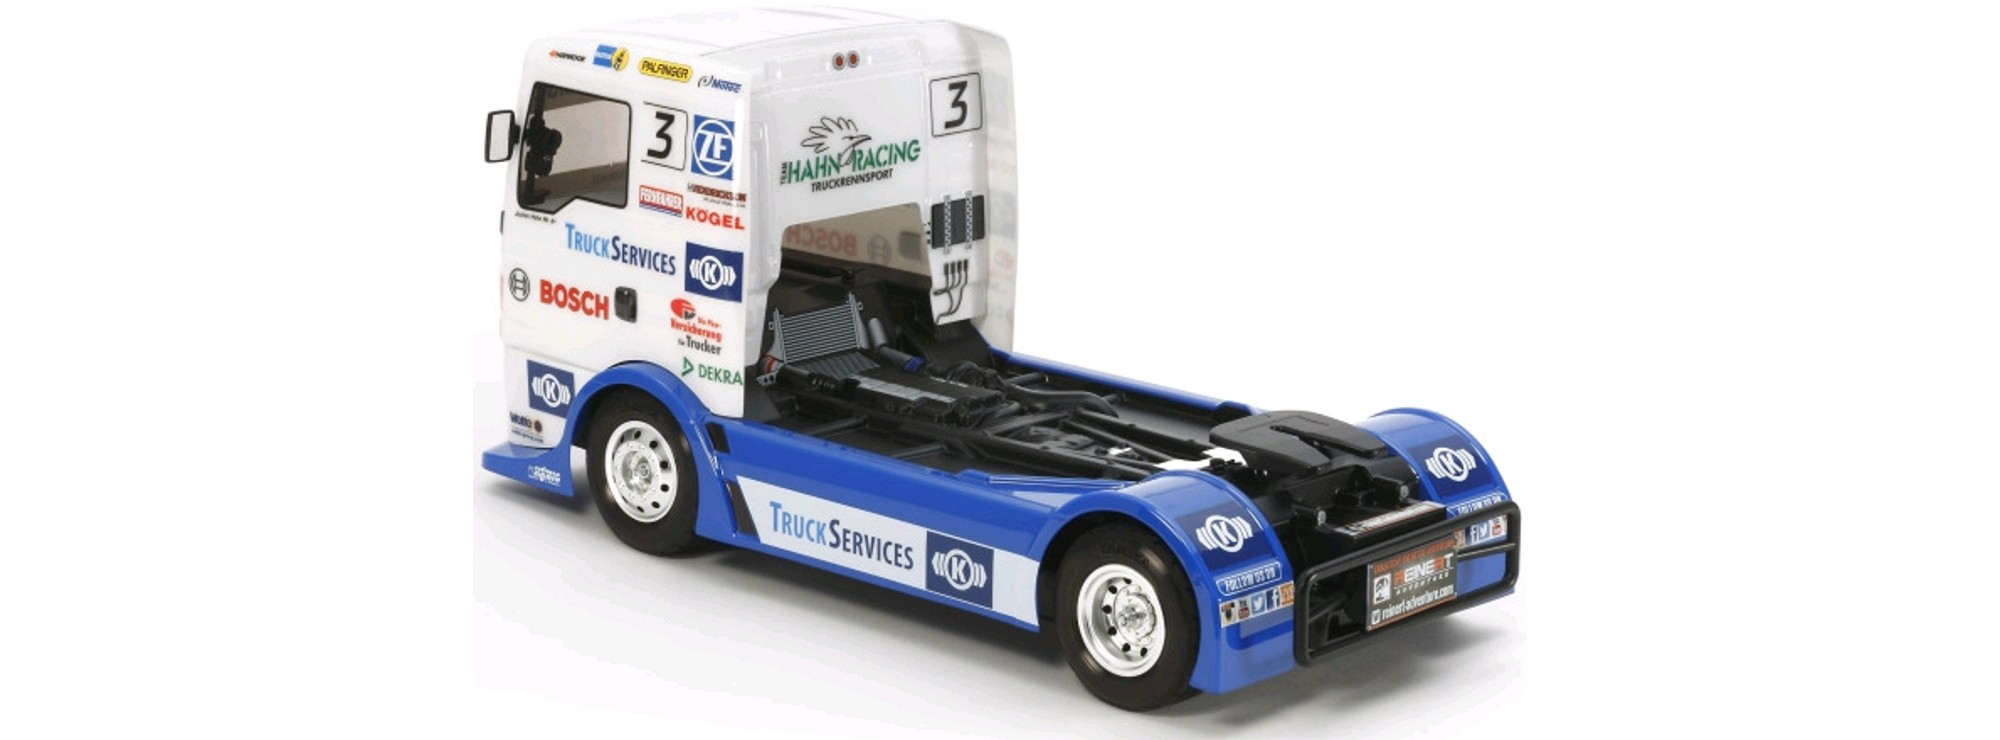 TAMIYA 58632 MAN TGS Racing Truck Team Hahn TT 01E RC Auto Bausatz 1 14 further Mini 4wd Tamiya 92313 Neo Falcon Red Special Ma Chassis moreover Traxxas Spare Parts Finder moreover Traxxas Spare Parts Finder together with Pro A96462B270465. on tamiya slot car chassis